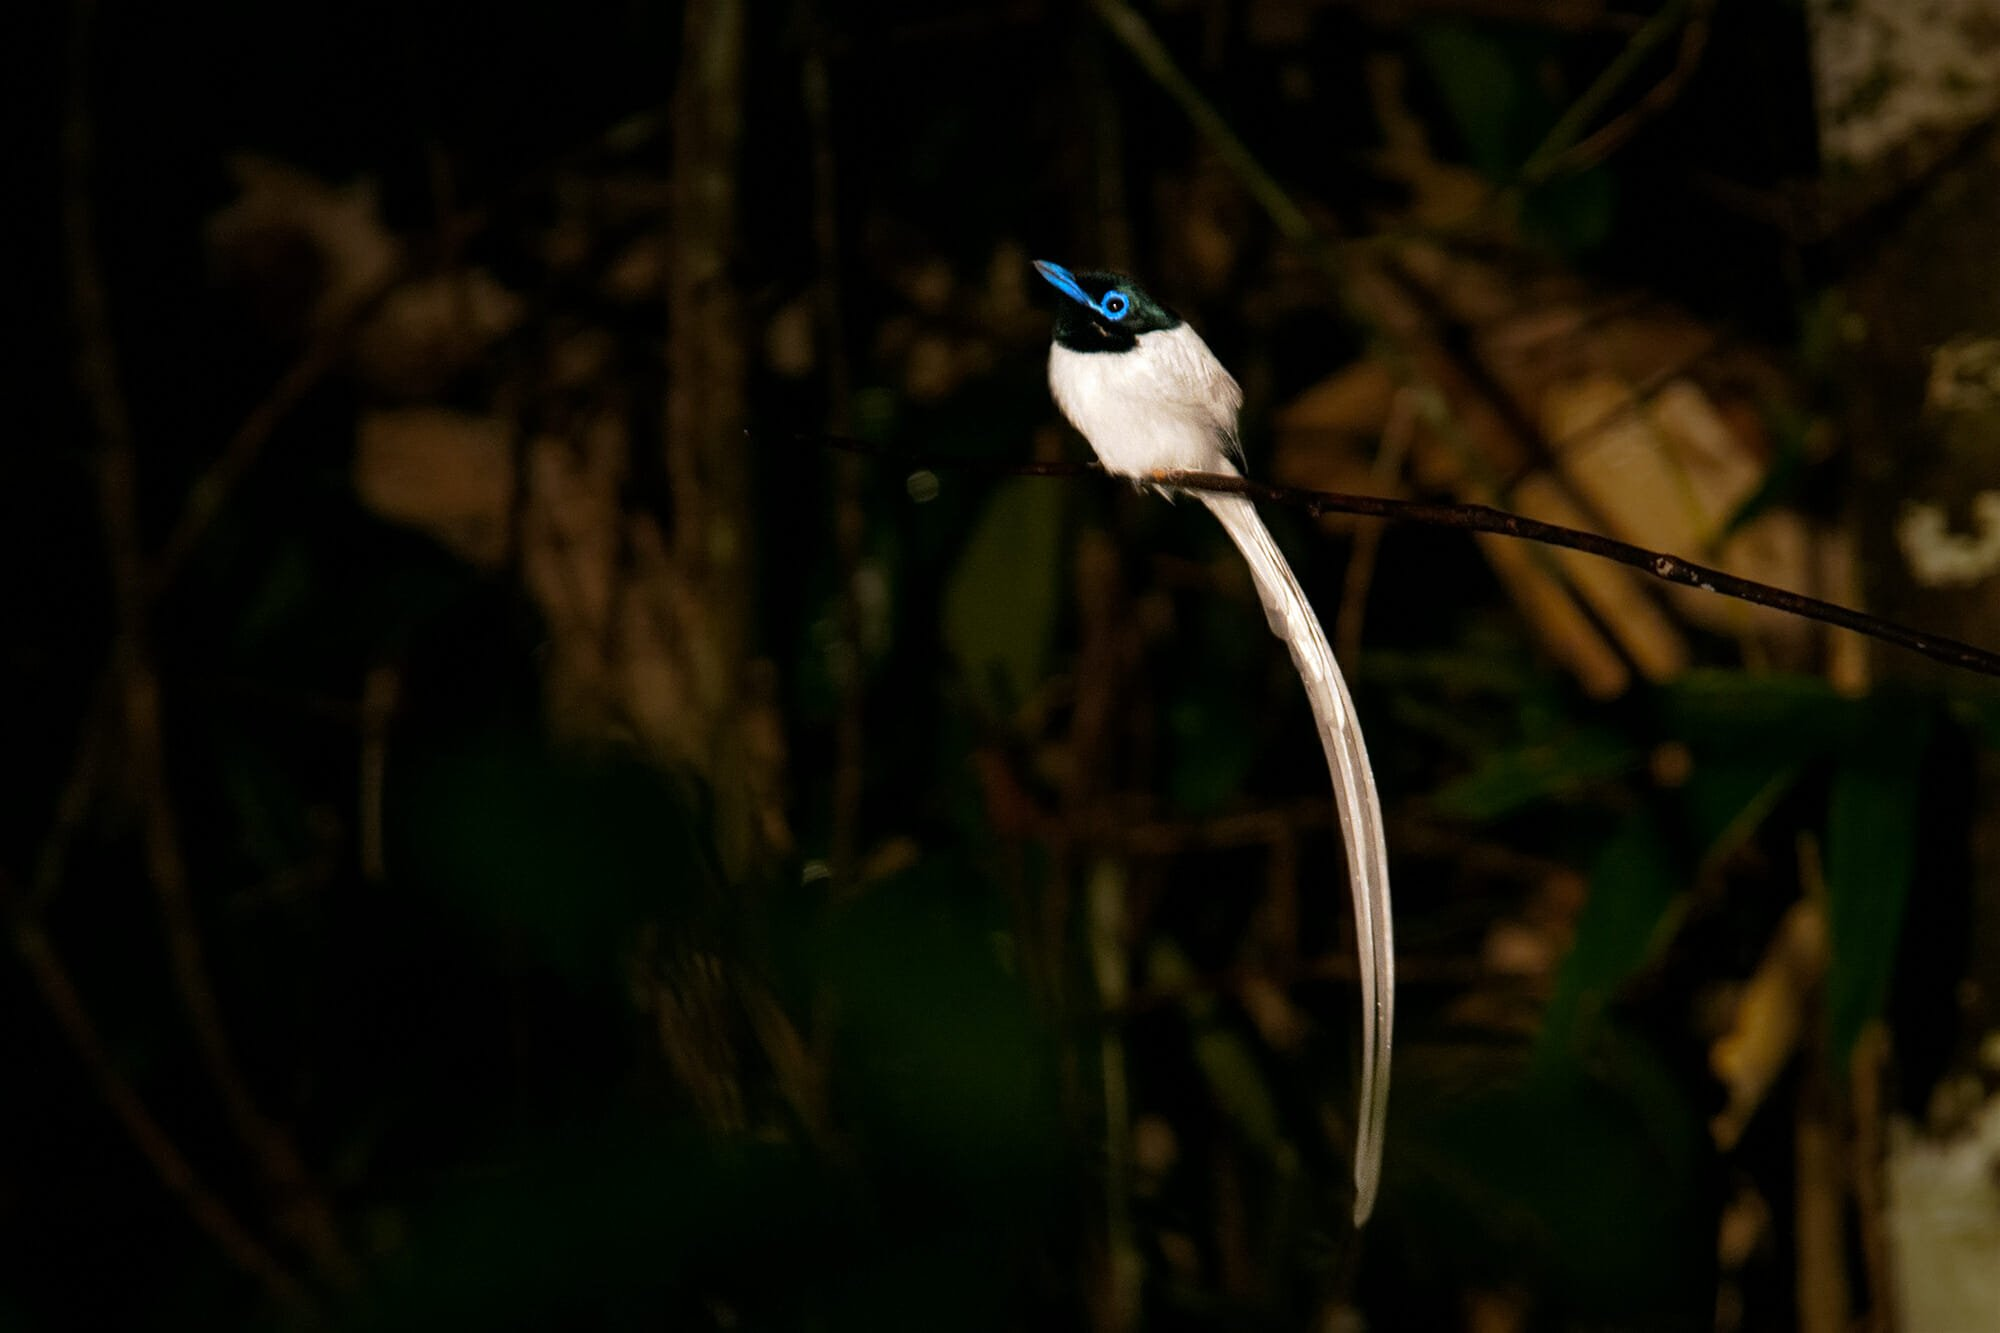 Asian paradise flycatcher at night at Danum Valley, Borneo